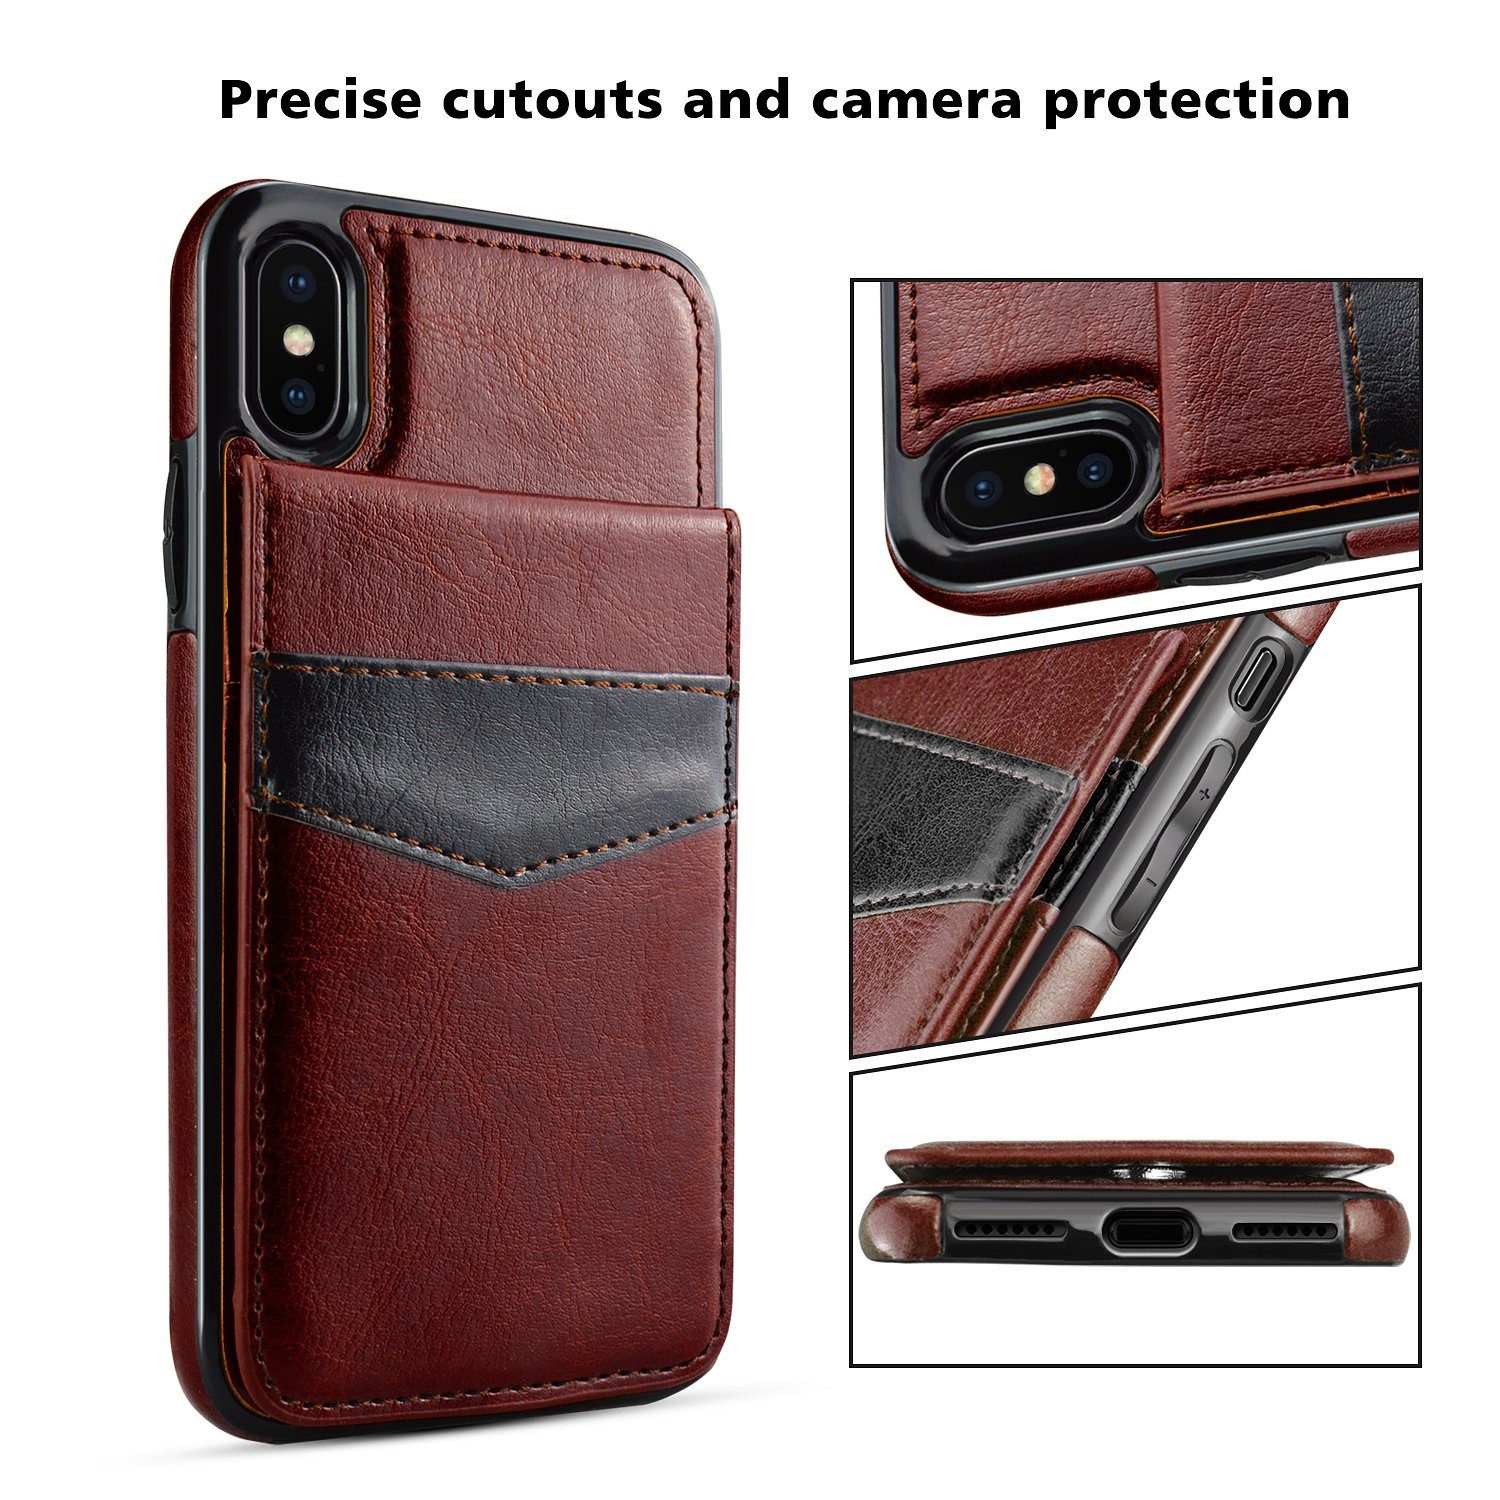 iPhone X Case, iPhone X Card Holder Case, LuckyBaby Premium Leather Folio Flip iPhone X Wallet Case with Credit Card Slots Shock-Absorbing Protective Case for iPhone X / iPhone 10 (2017) - Brown by LuckyBaby (Image #4)